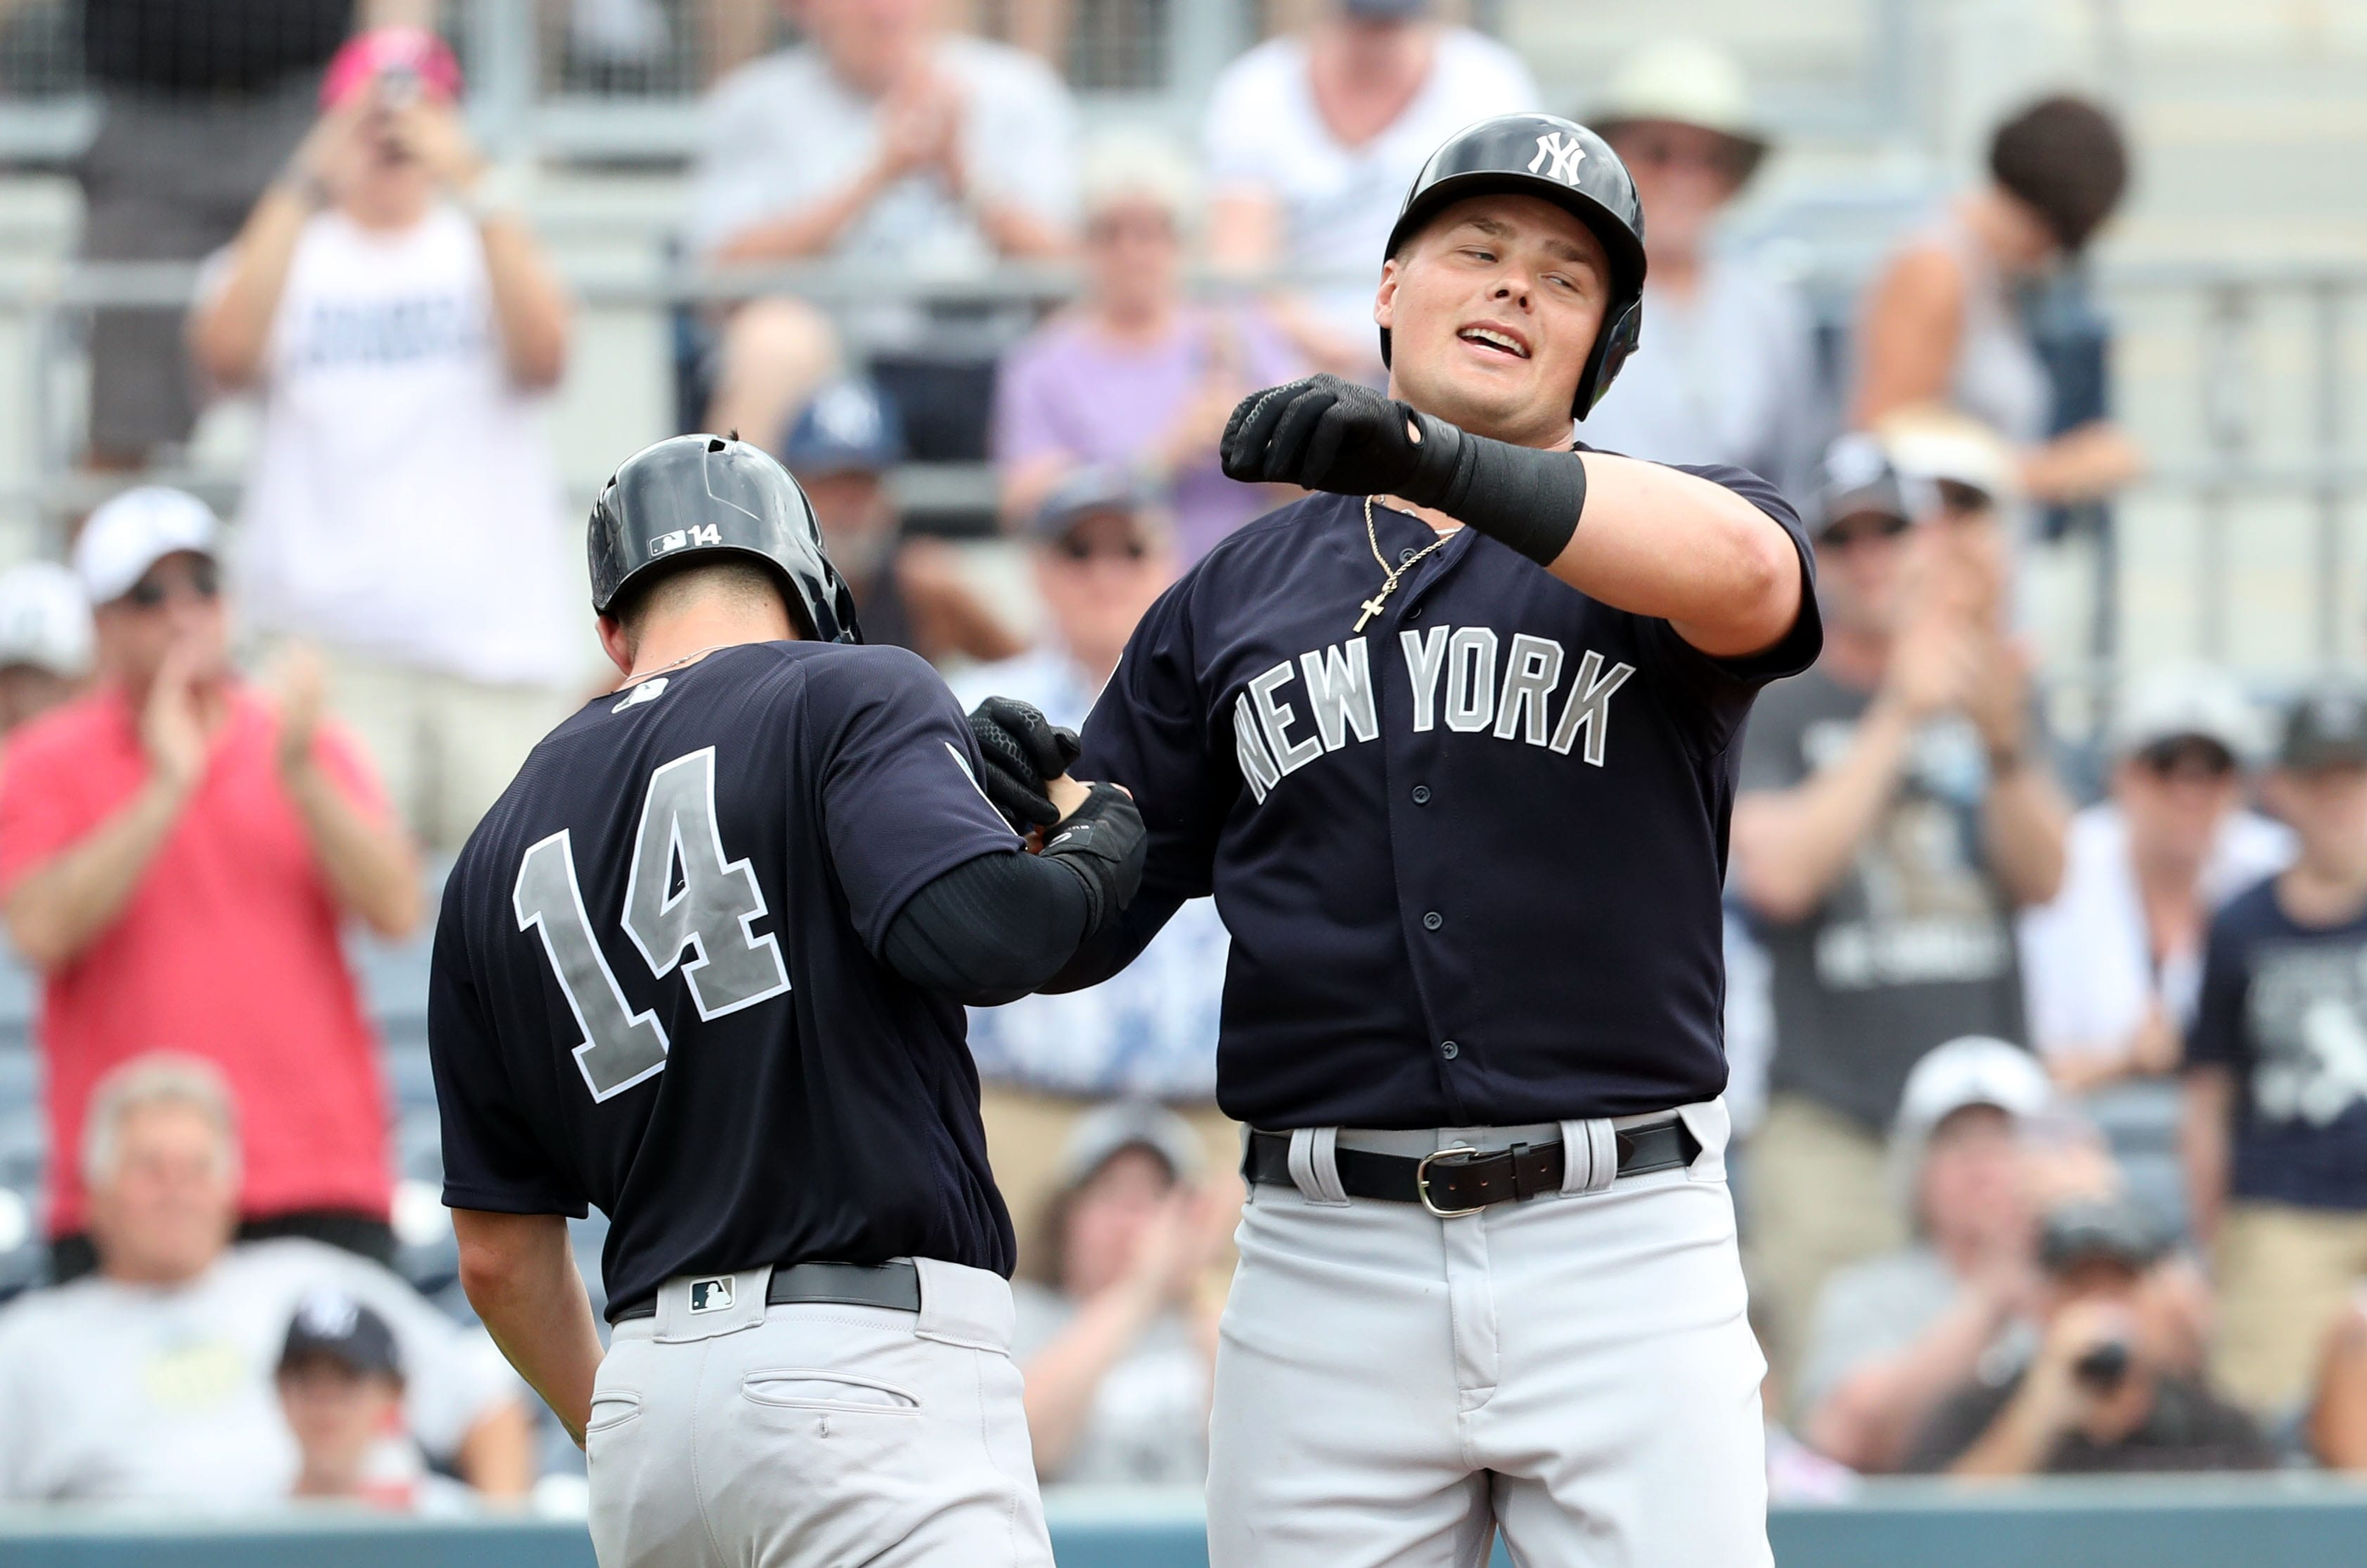 New York Yankees, Luke Voit